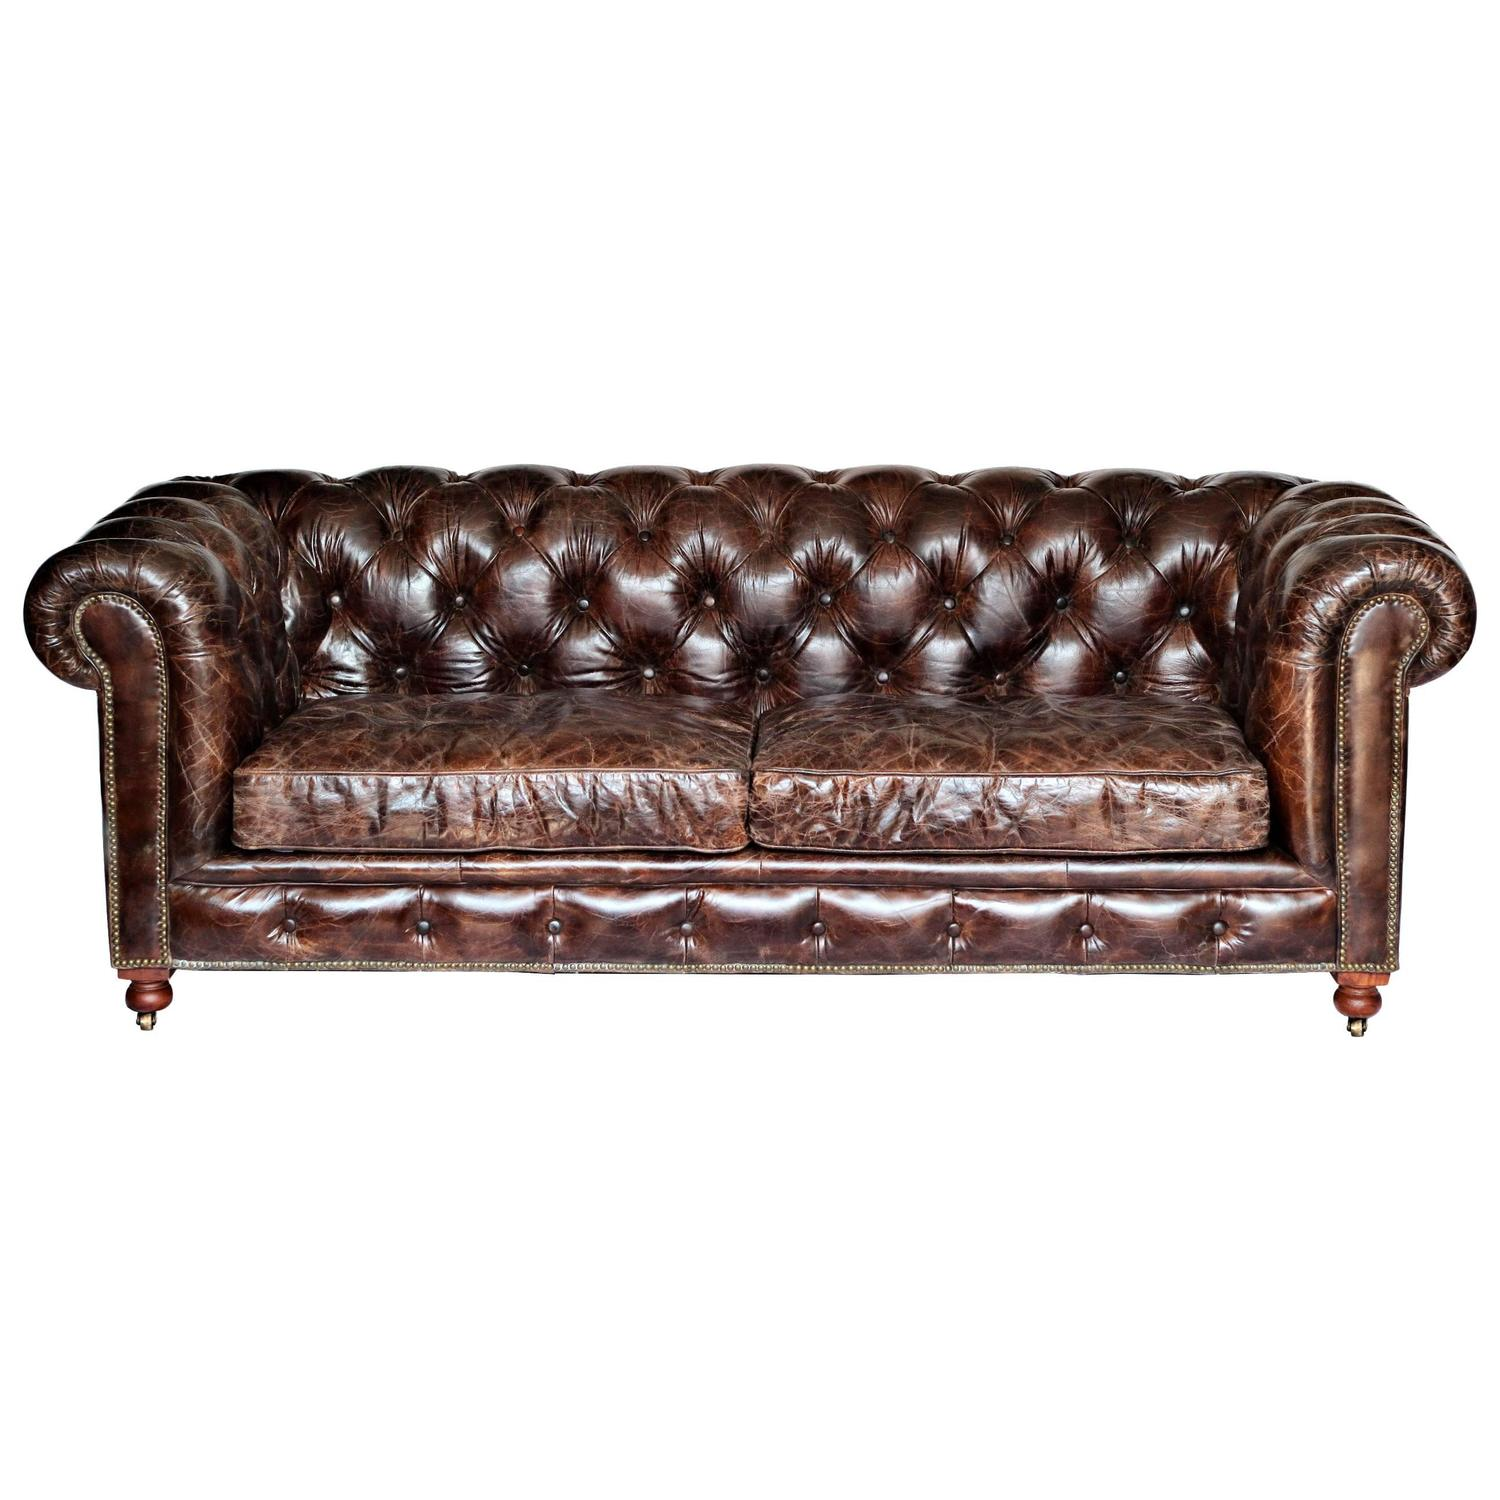 Custom leather chesterfield sofa at 1stdibs Leather chesterfield loveseat